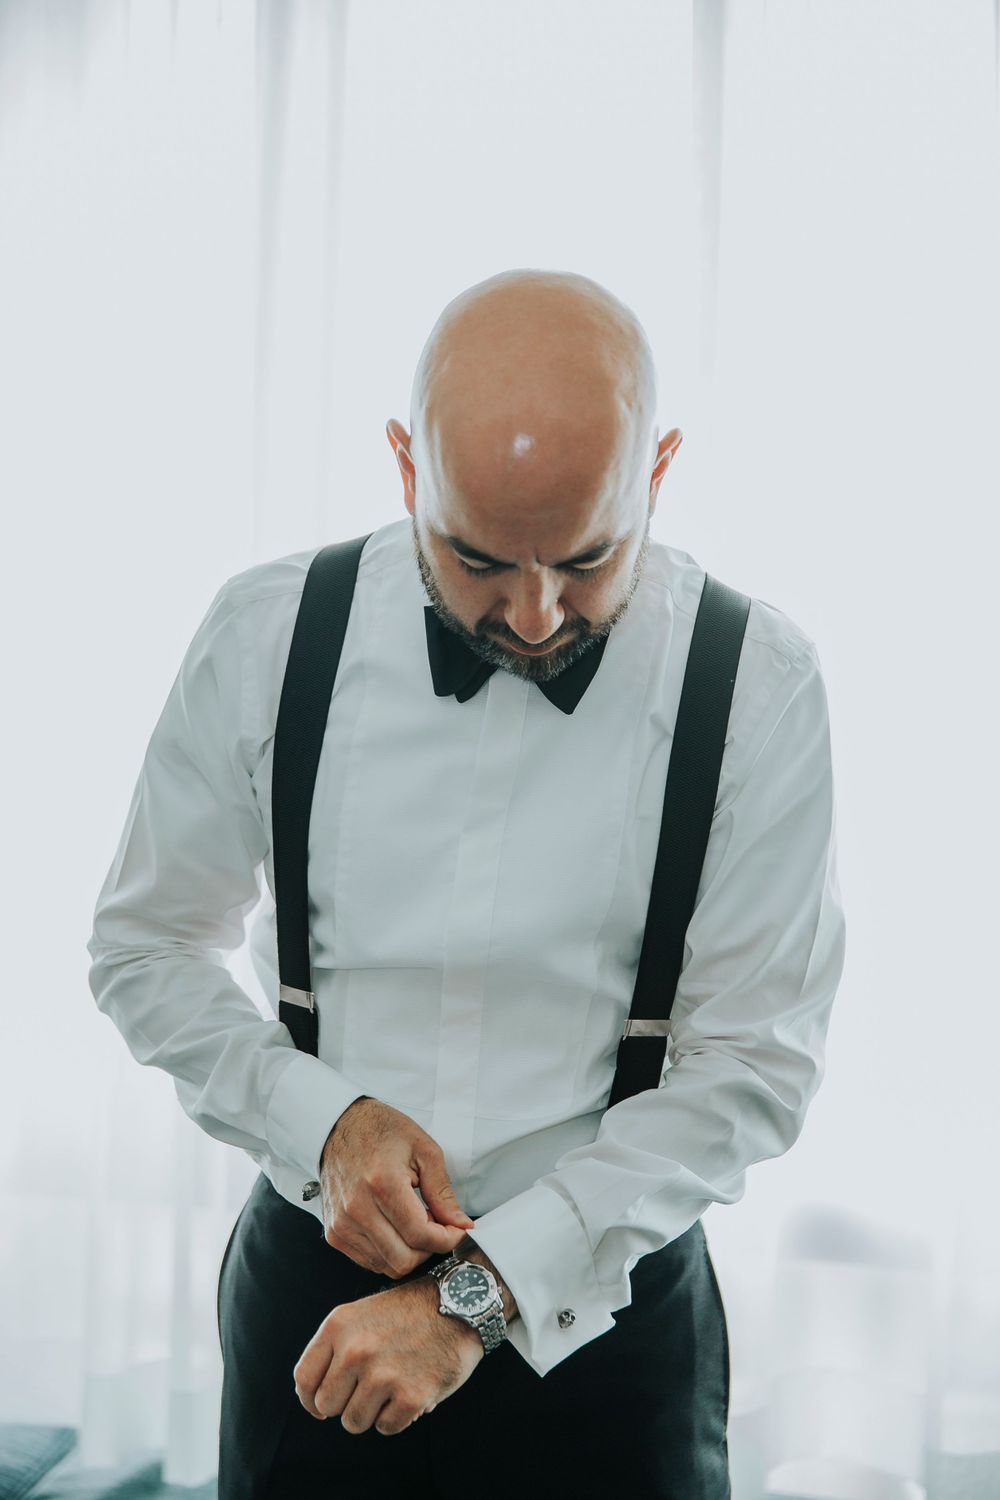 groom adjusting watch while getting ready